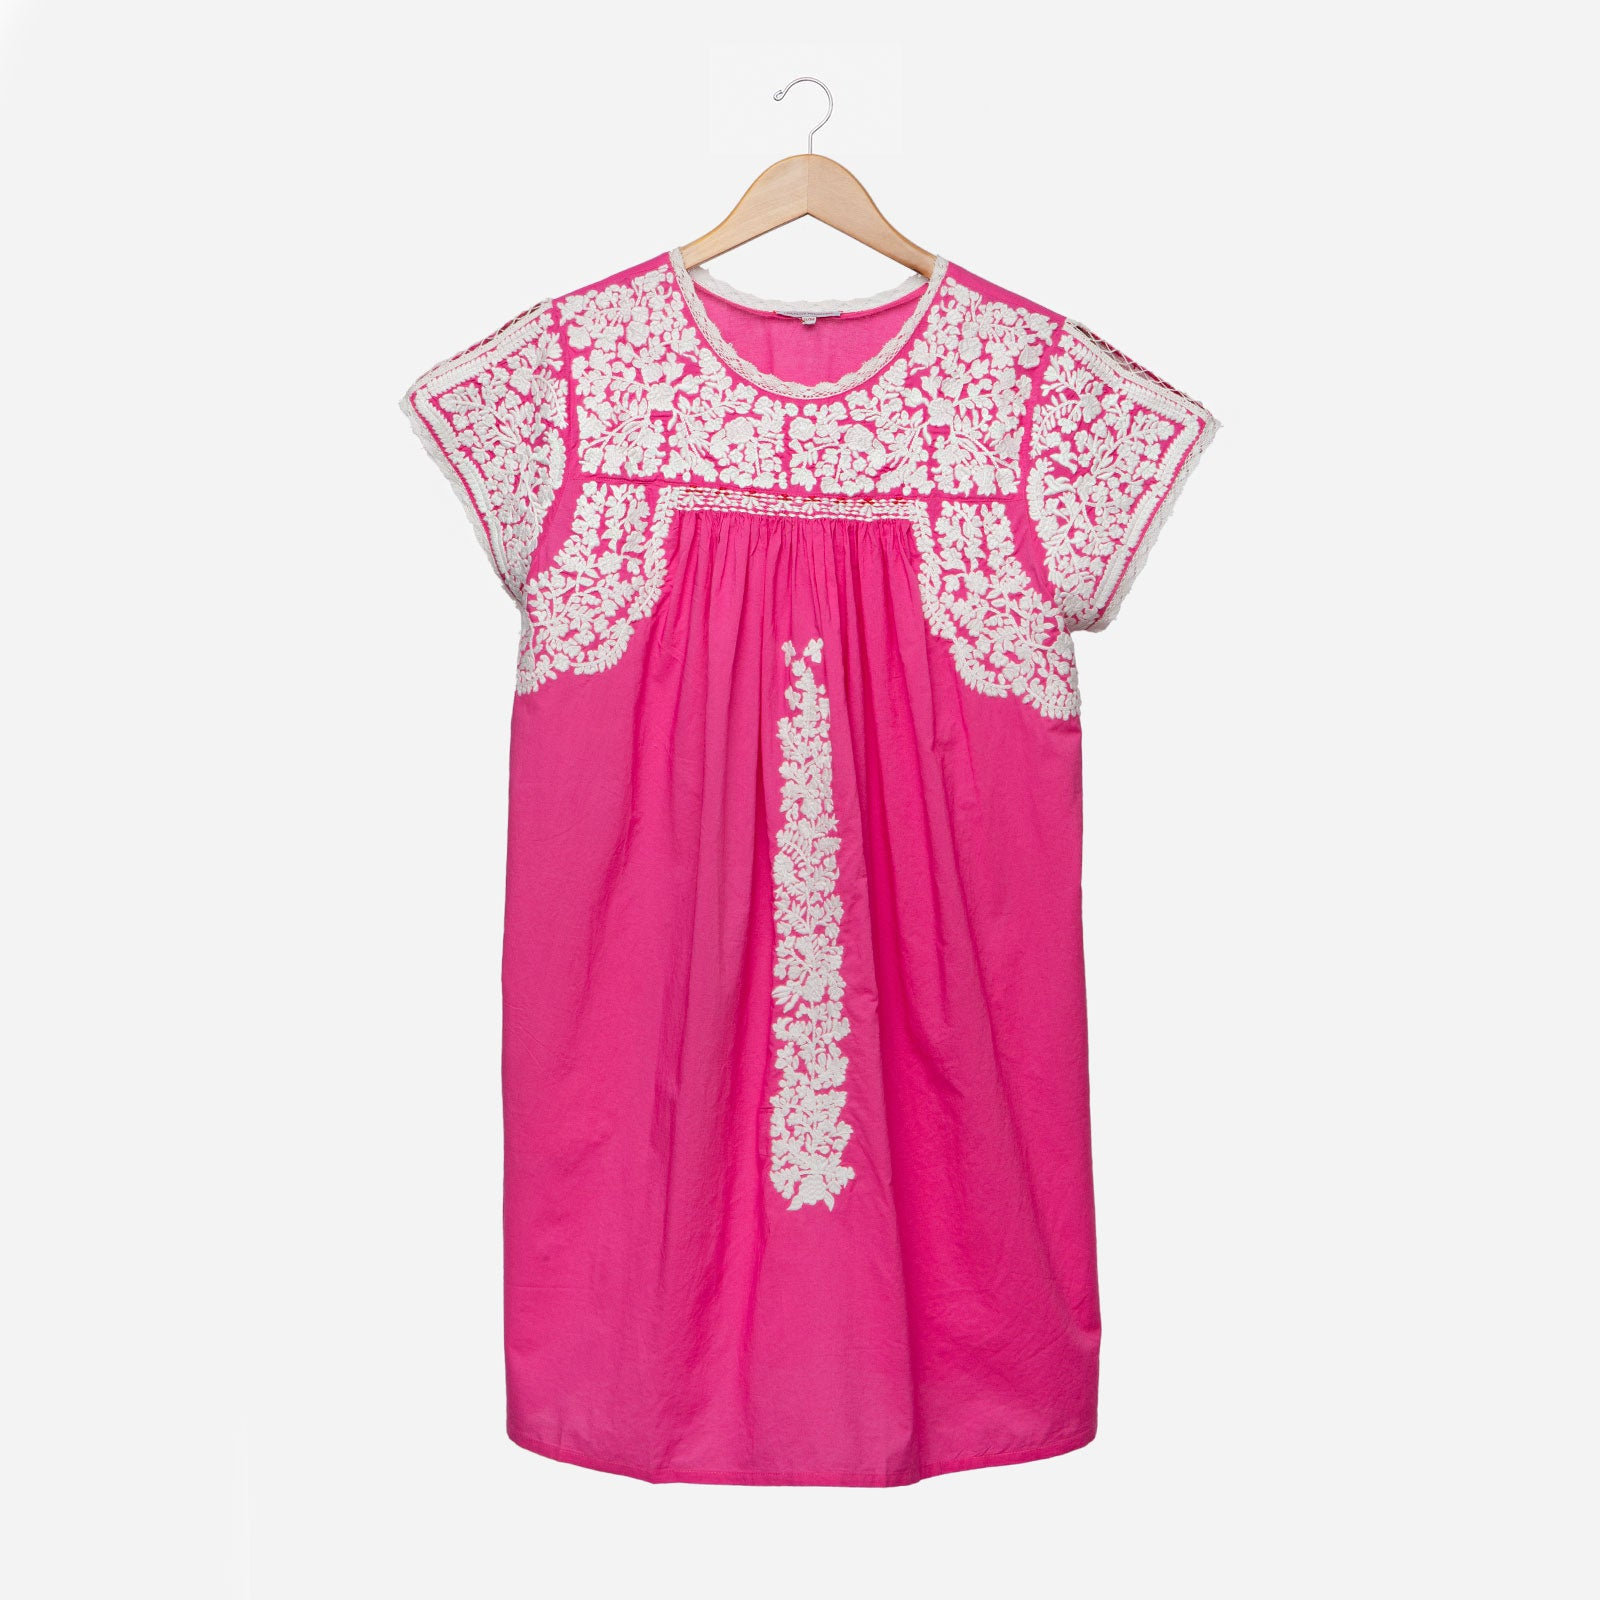 Floral Embroidered Lace Dress Pink Oyster